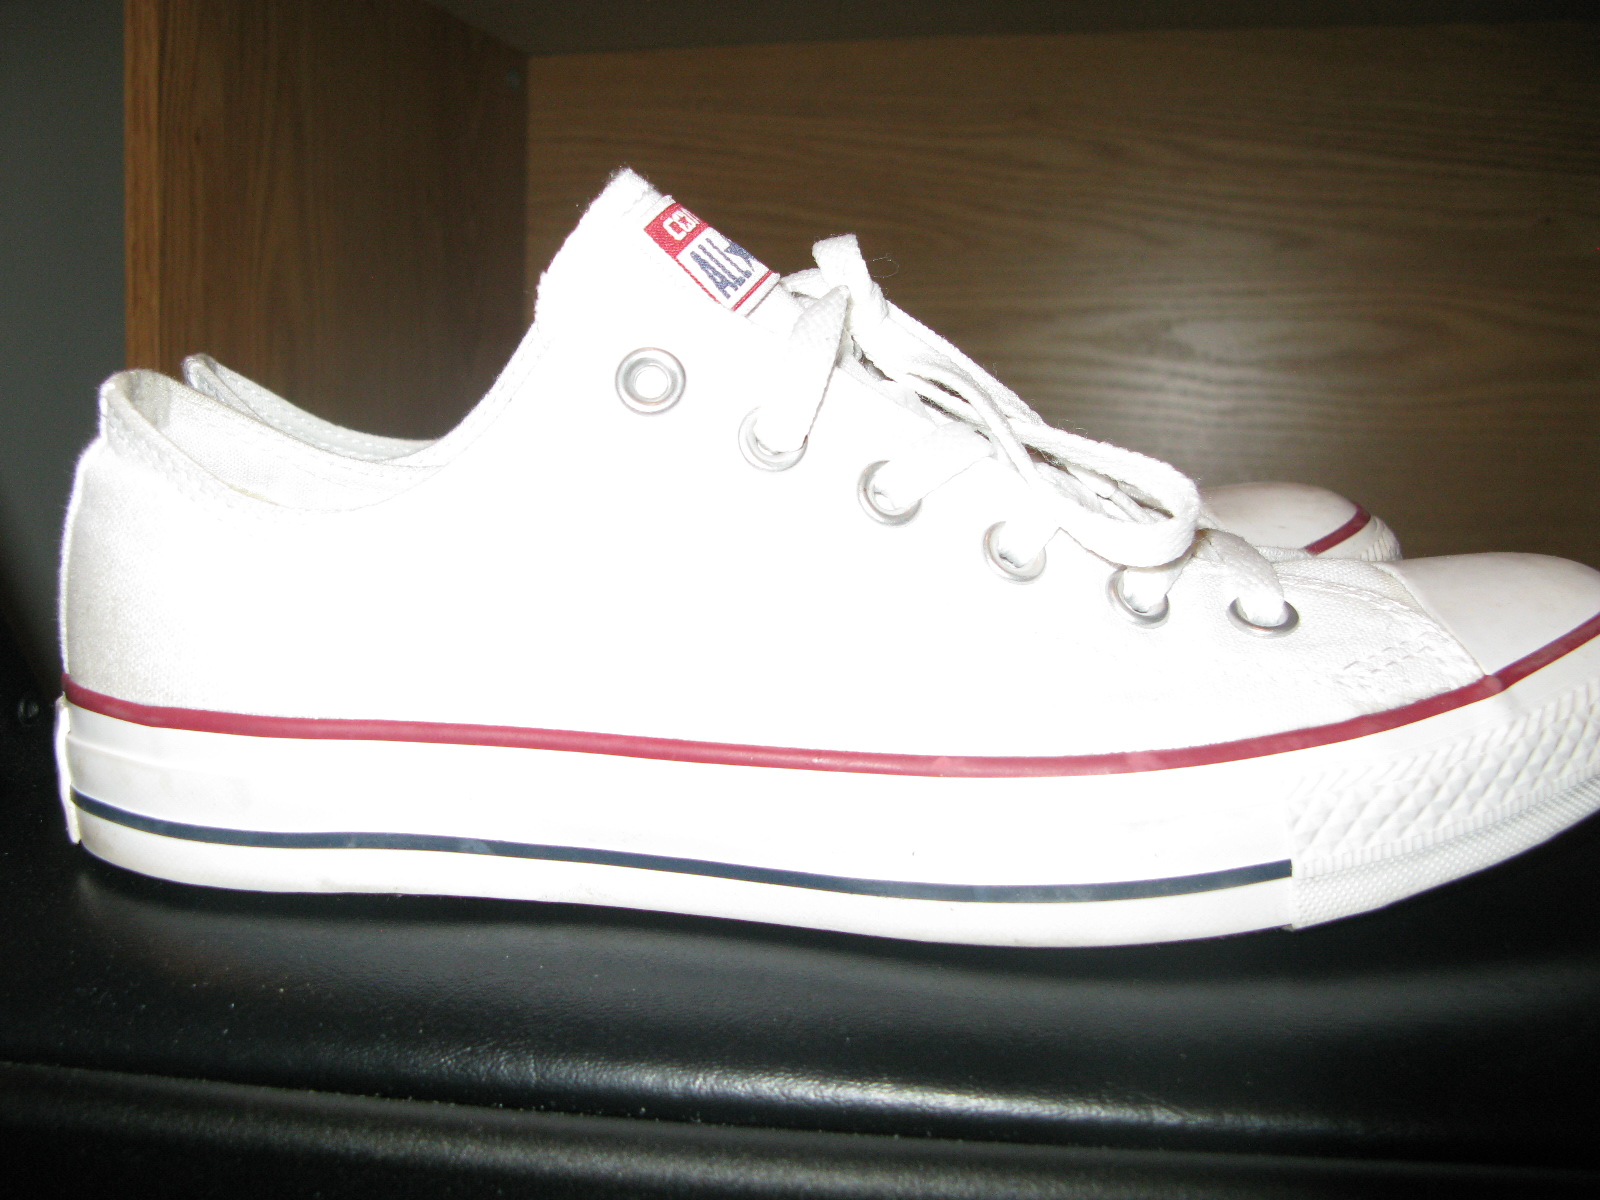 Converse Size Chart Shoes: Converse side view.JPG - Wikimedia Commons,Chart